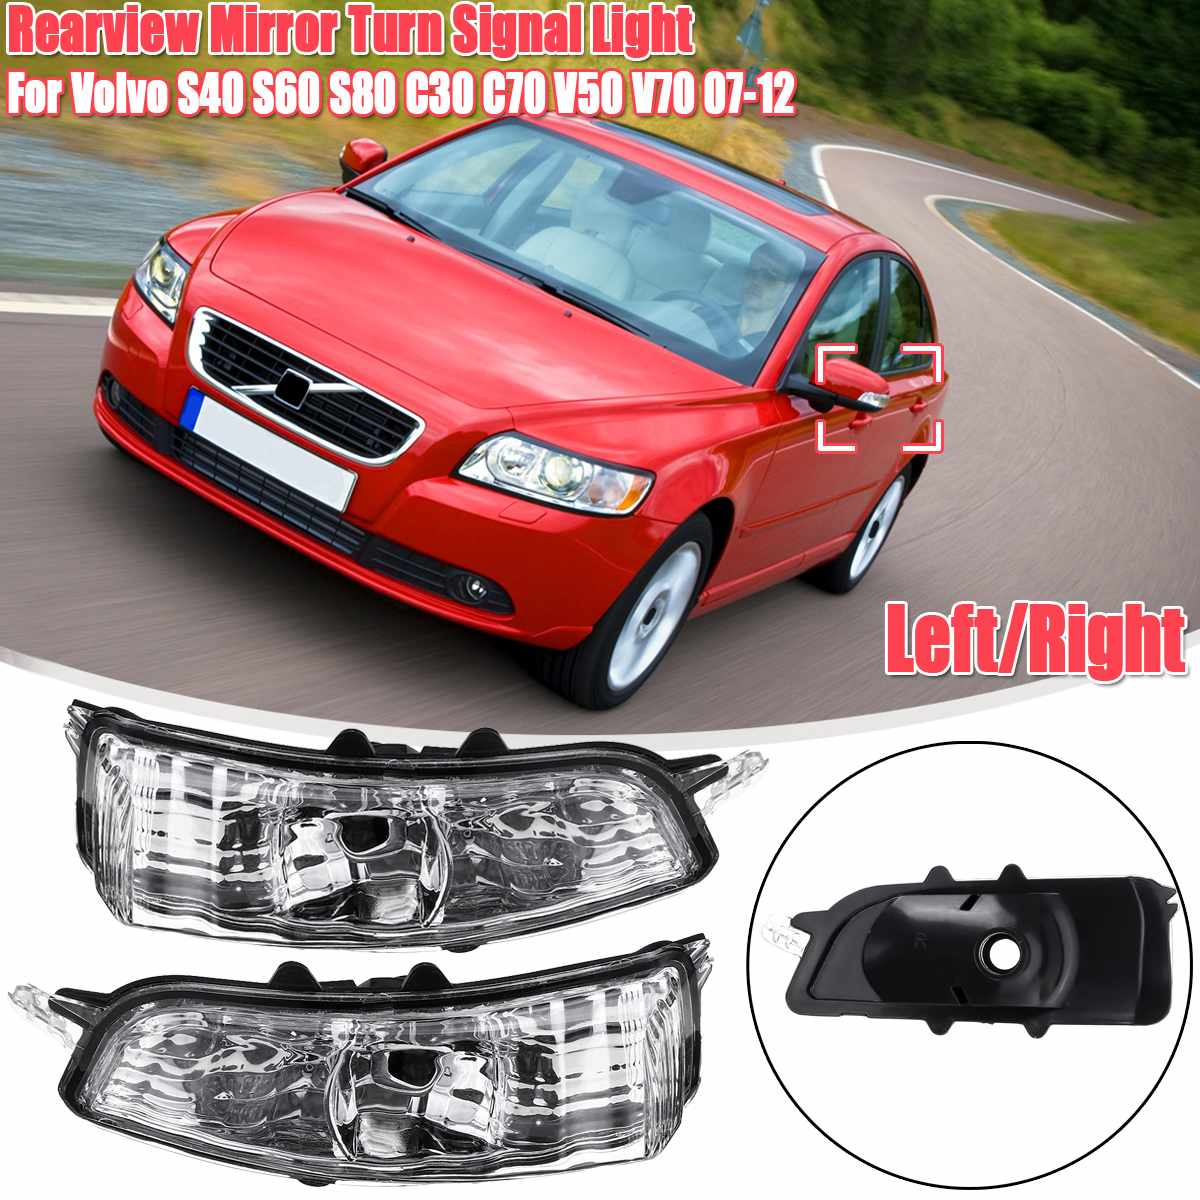 Turn Signal <font><b>Lights</b></font> 2007-2012 Turn Signals Rearview Mirror Indicators Side Mirror Blinkers for <font><b>Volvo</b></font> <font><b>S40</b></font> S60 S80 C30 C70 V50 V70 image